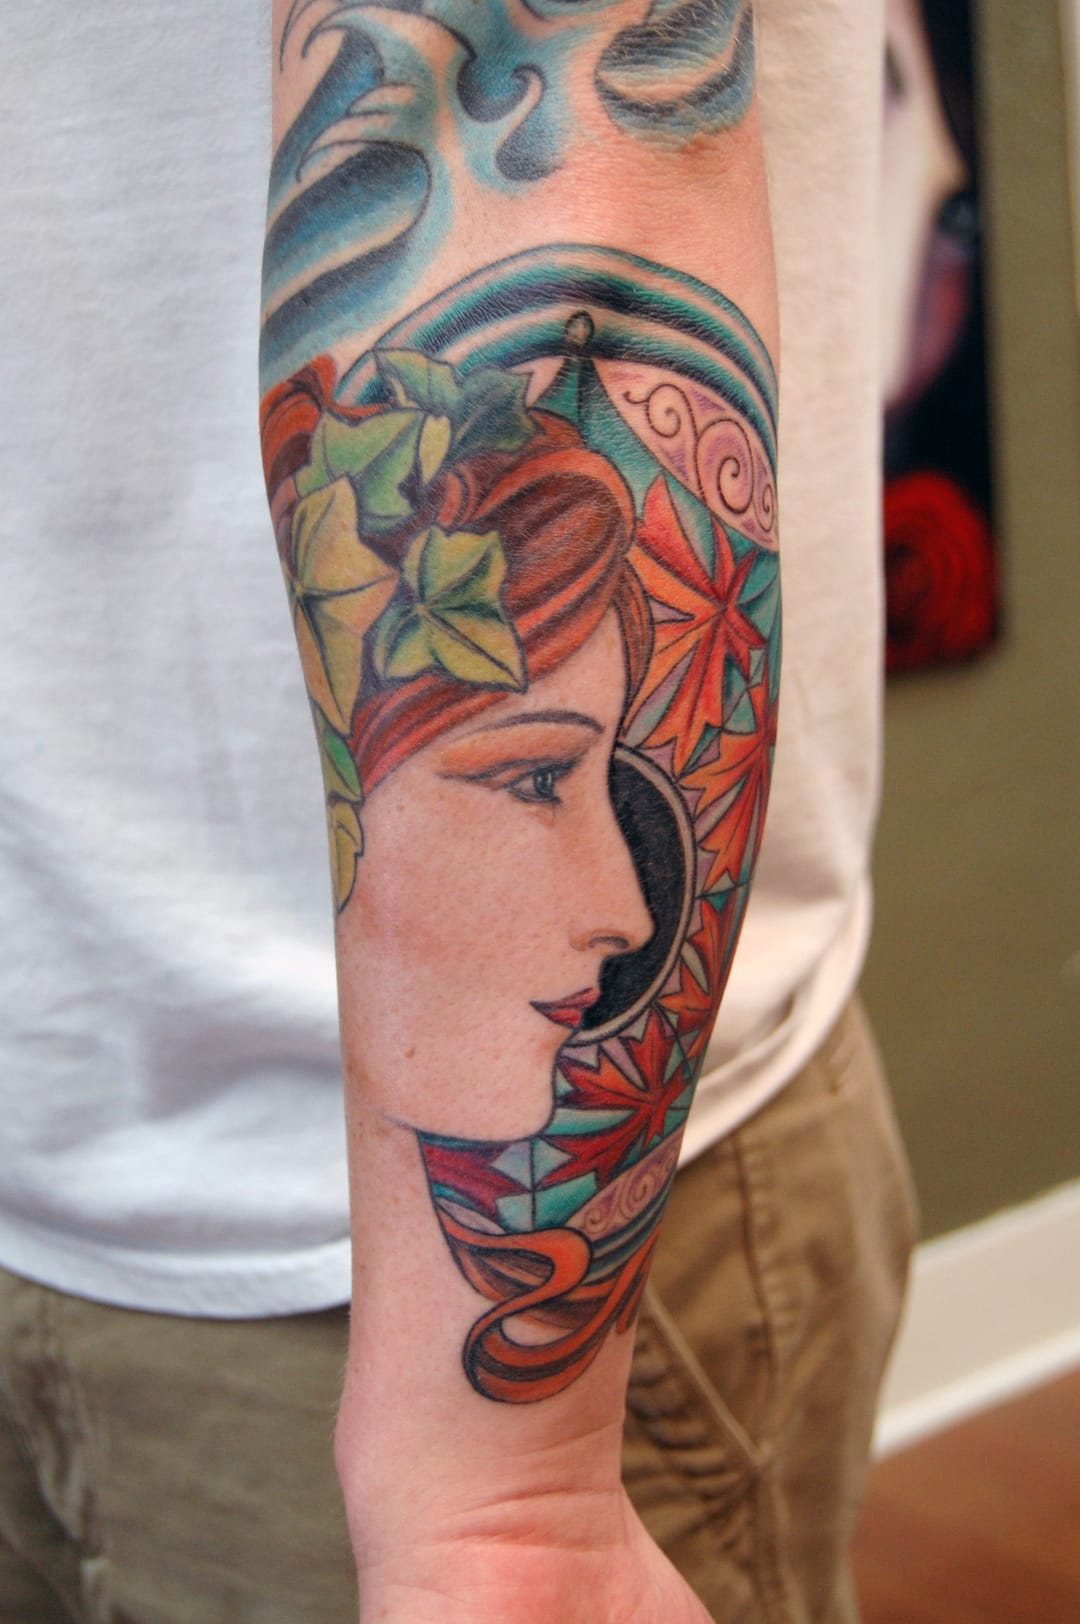 This lovely tattoo is faithful to the Art Nouveau's spirit, by Stéphanie Washburn